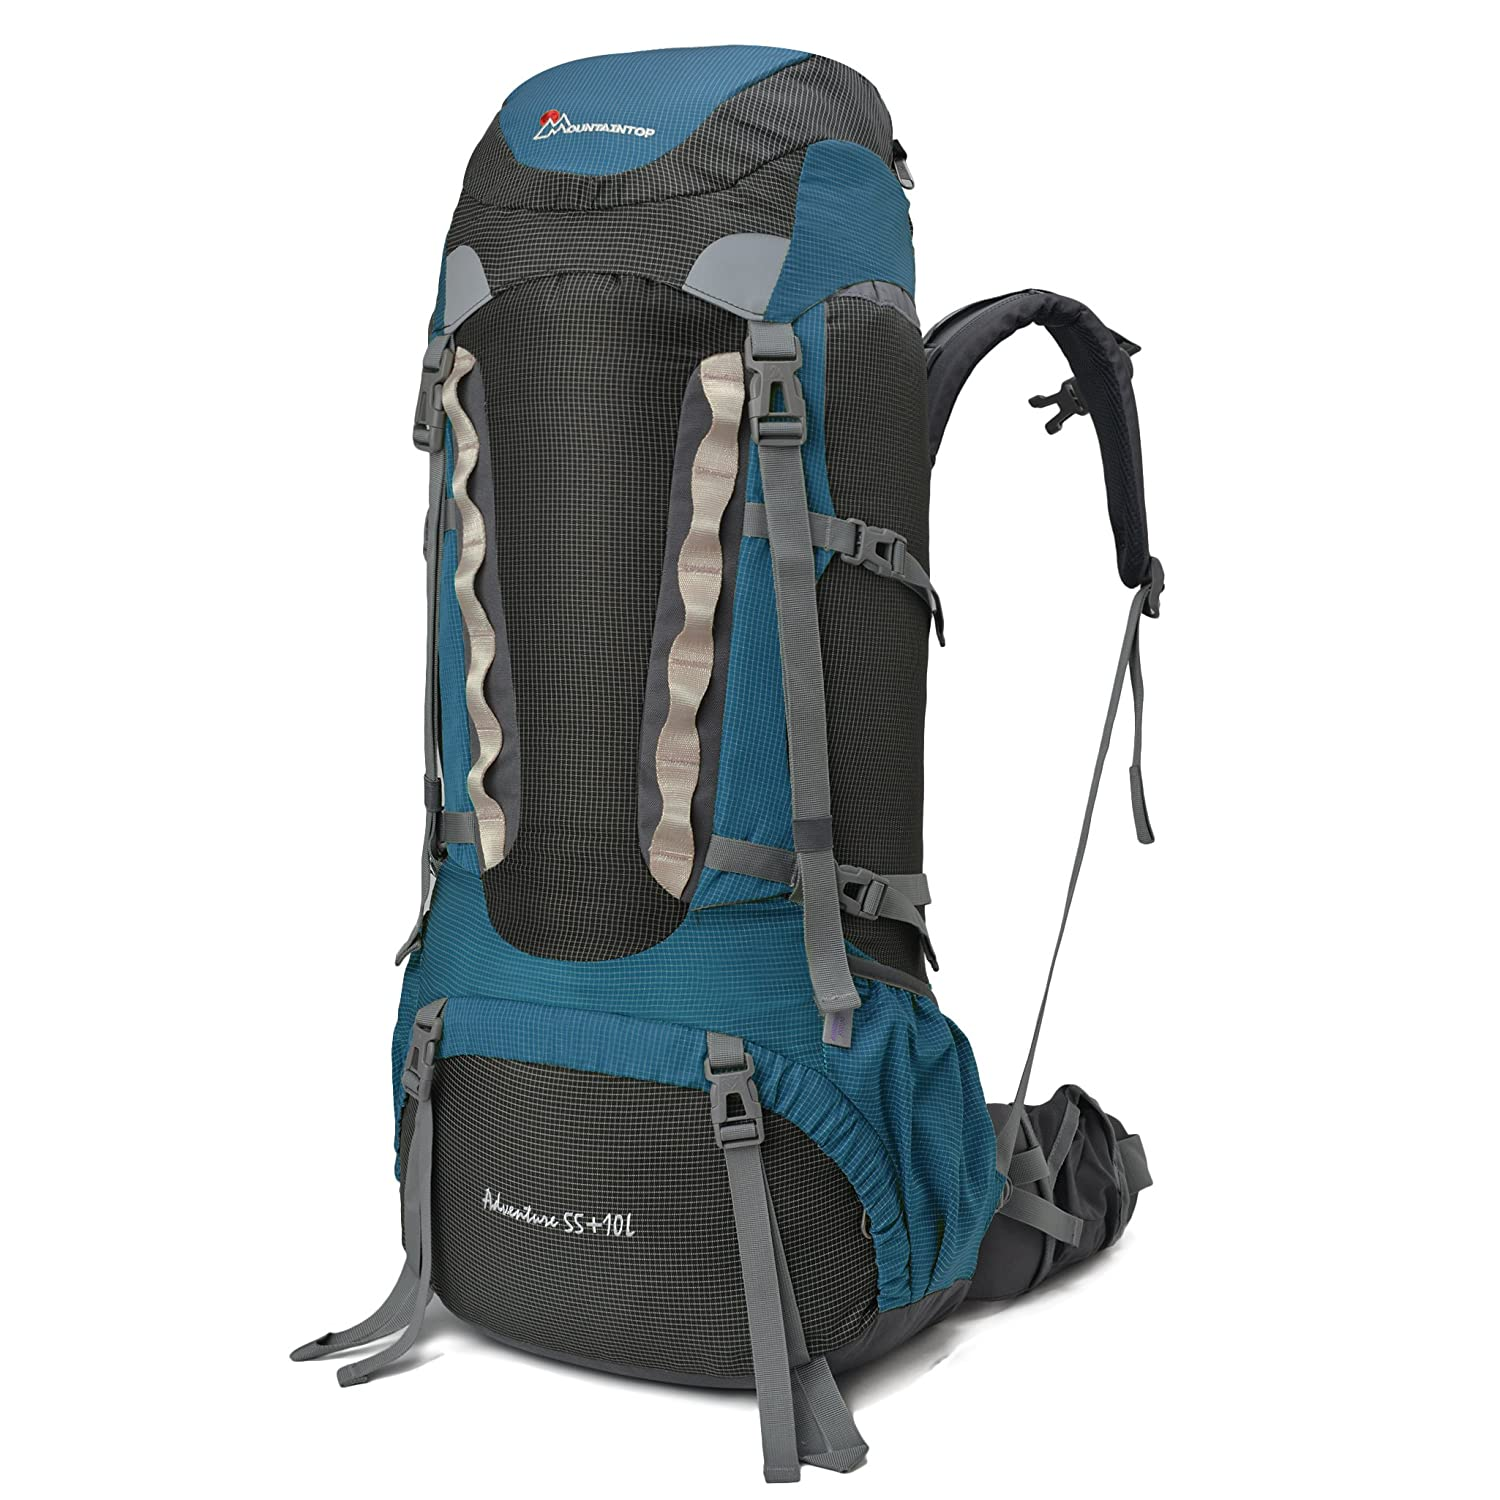 mountaintop 55l10l hiking backpack with rain cover 651i